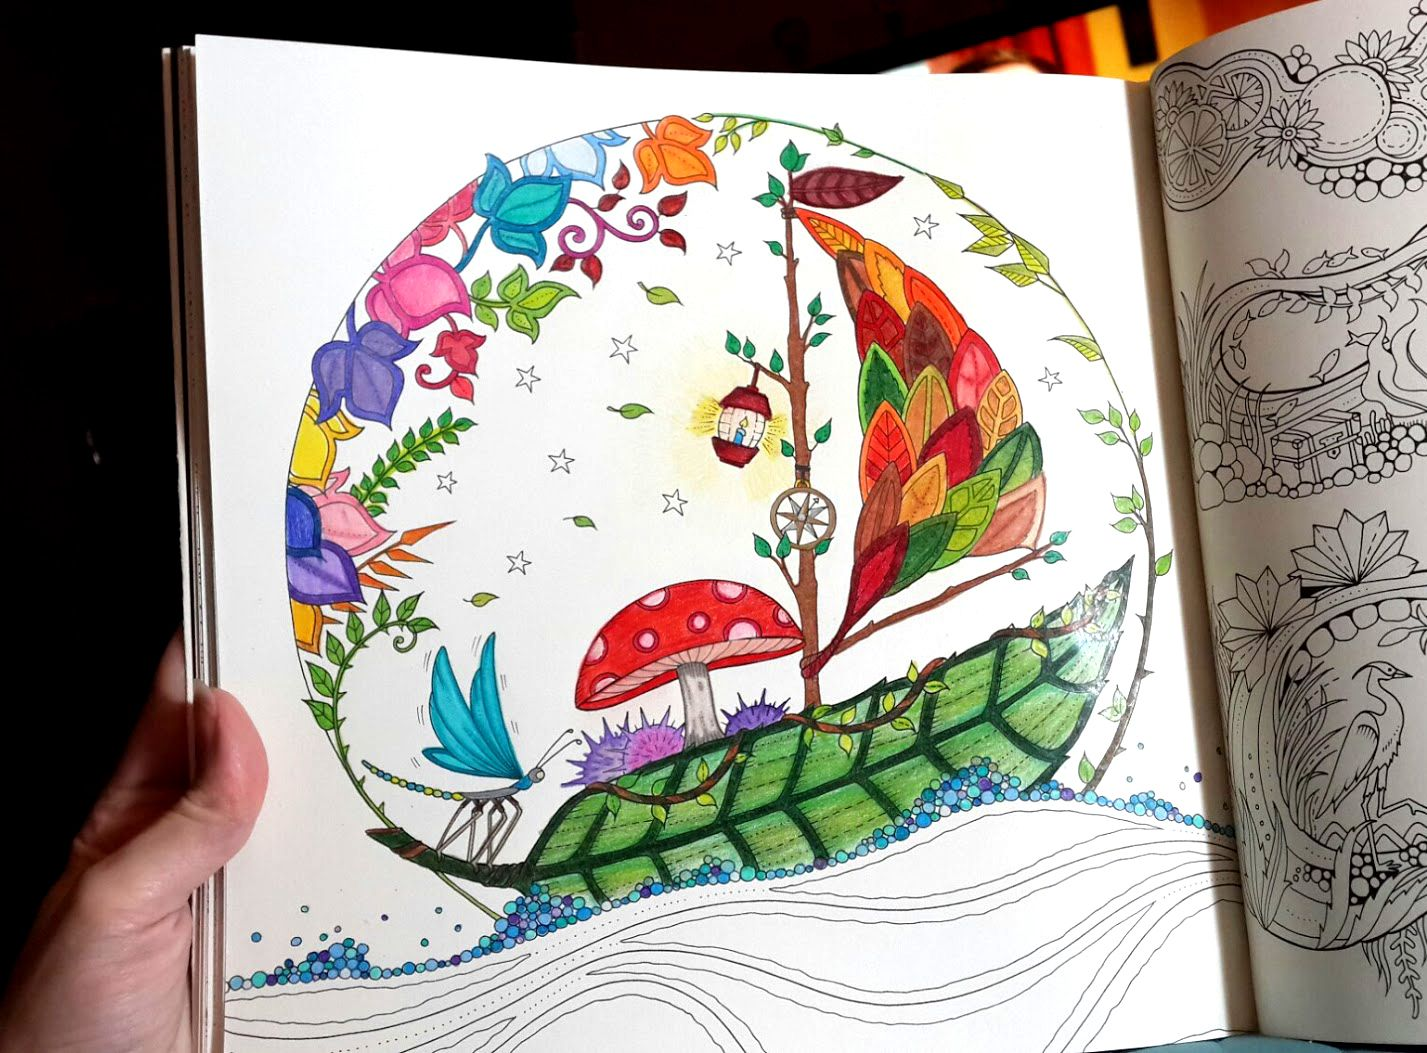 Coloring In Progress Shot Of The Adult Book Page Featuring A Leaf Sailboat From